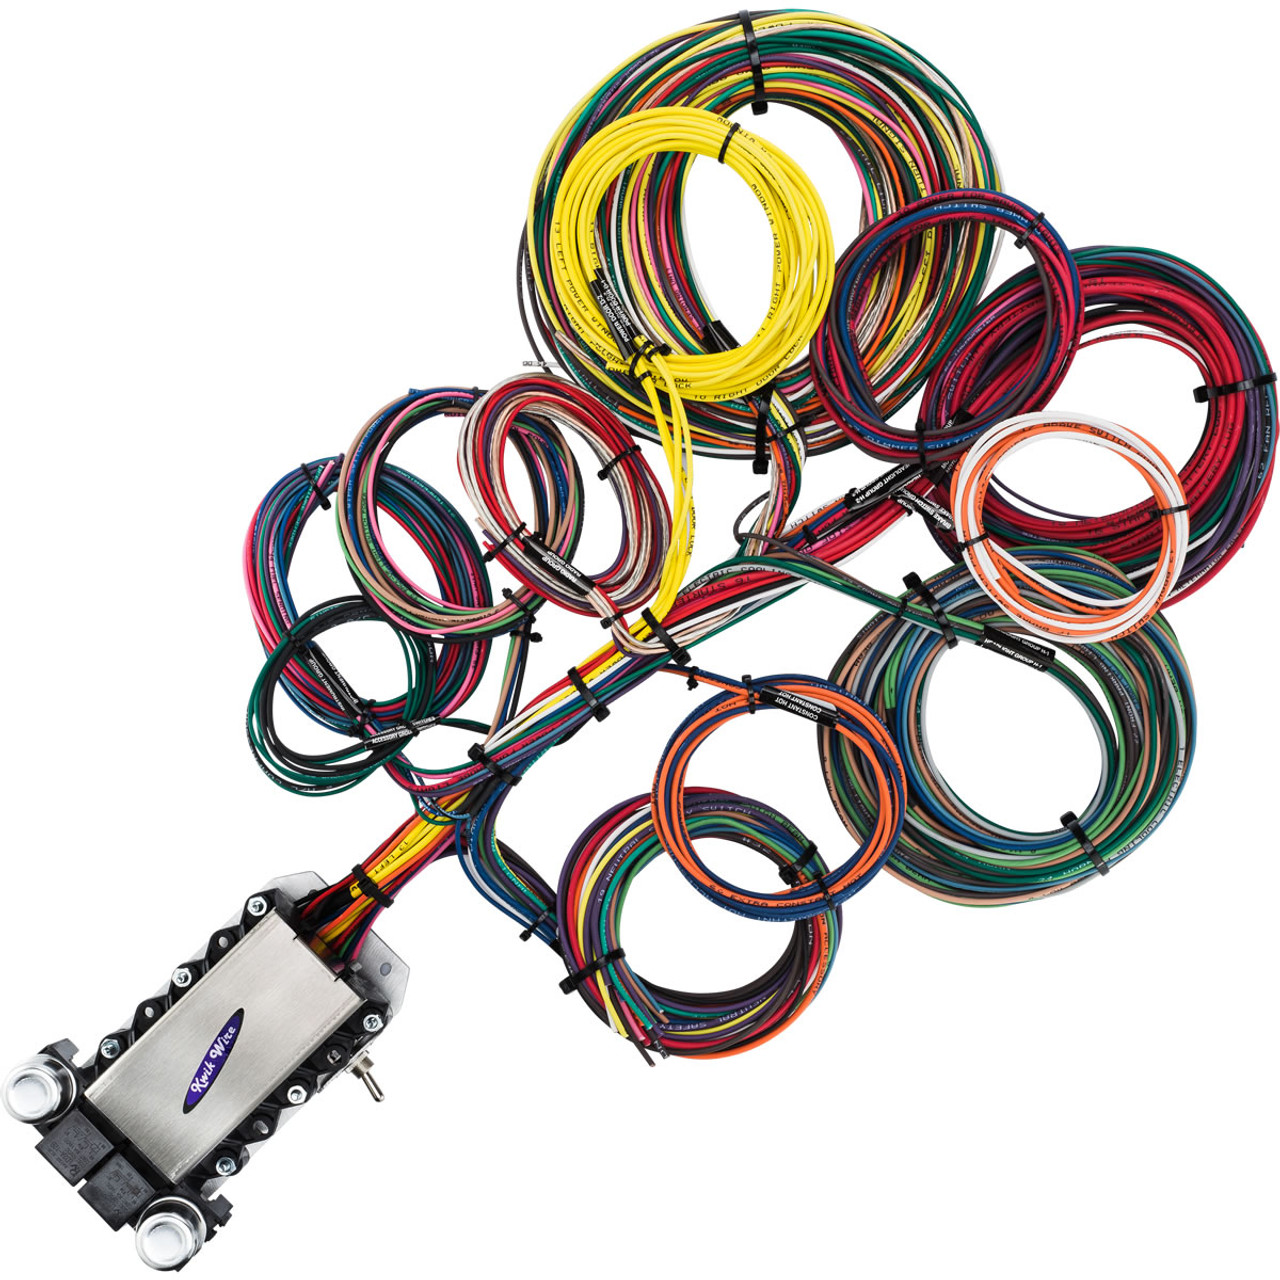 22 circuit ford wire harness kwikwire com electrify your rideford wire harness 3 [ 1280 x 1280 Pixel ]